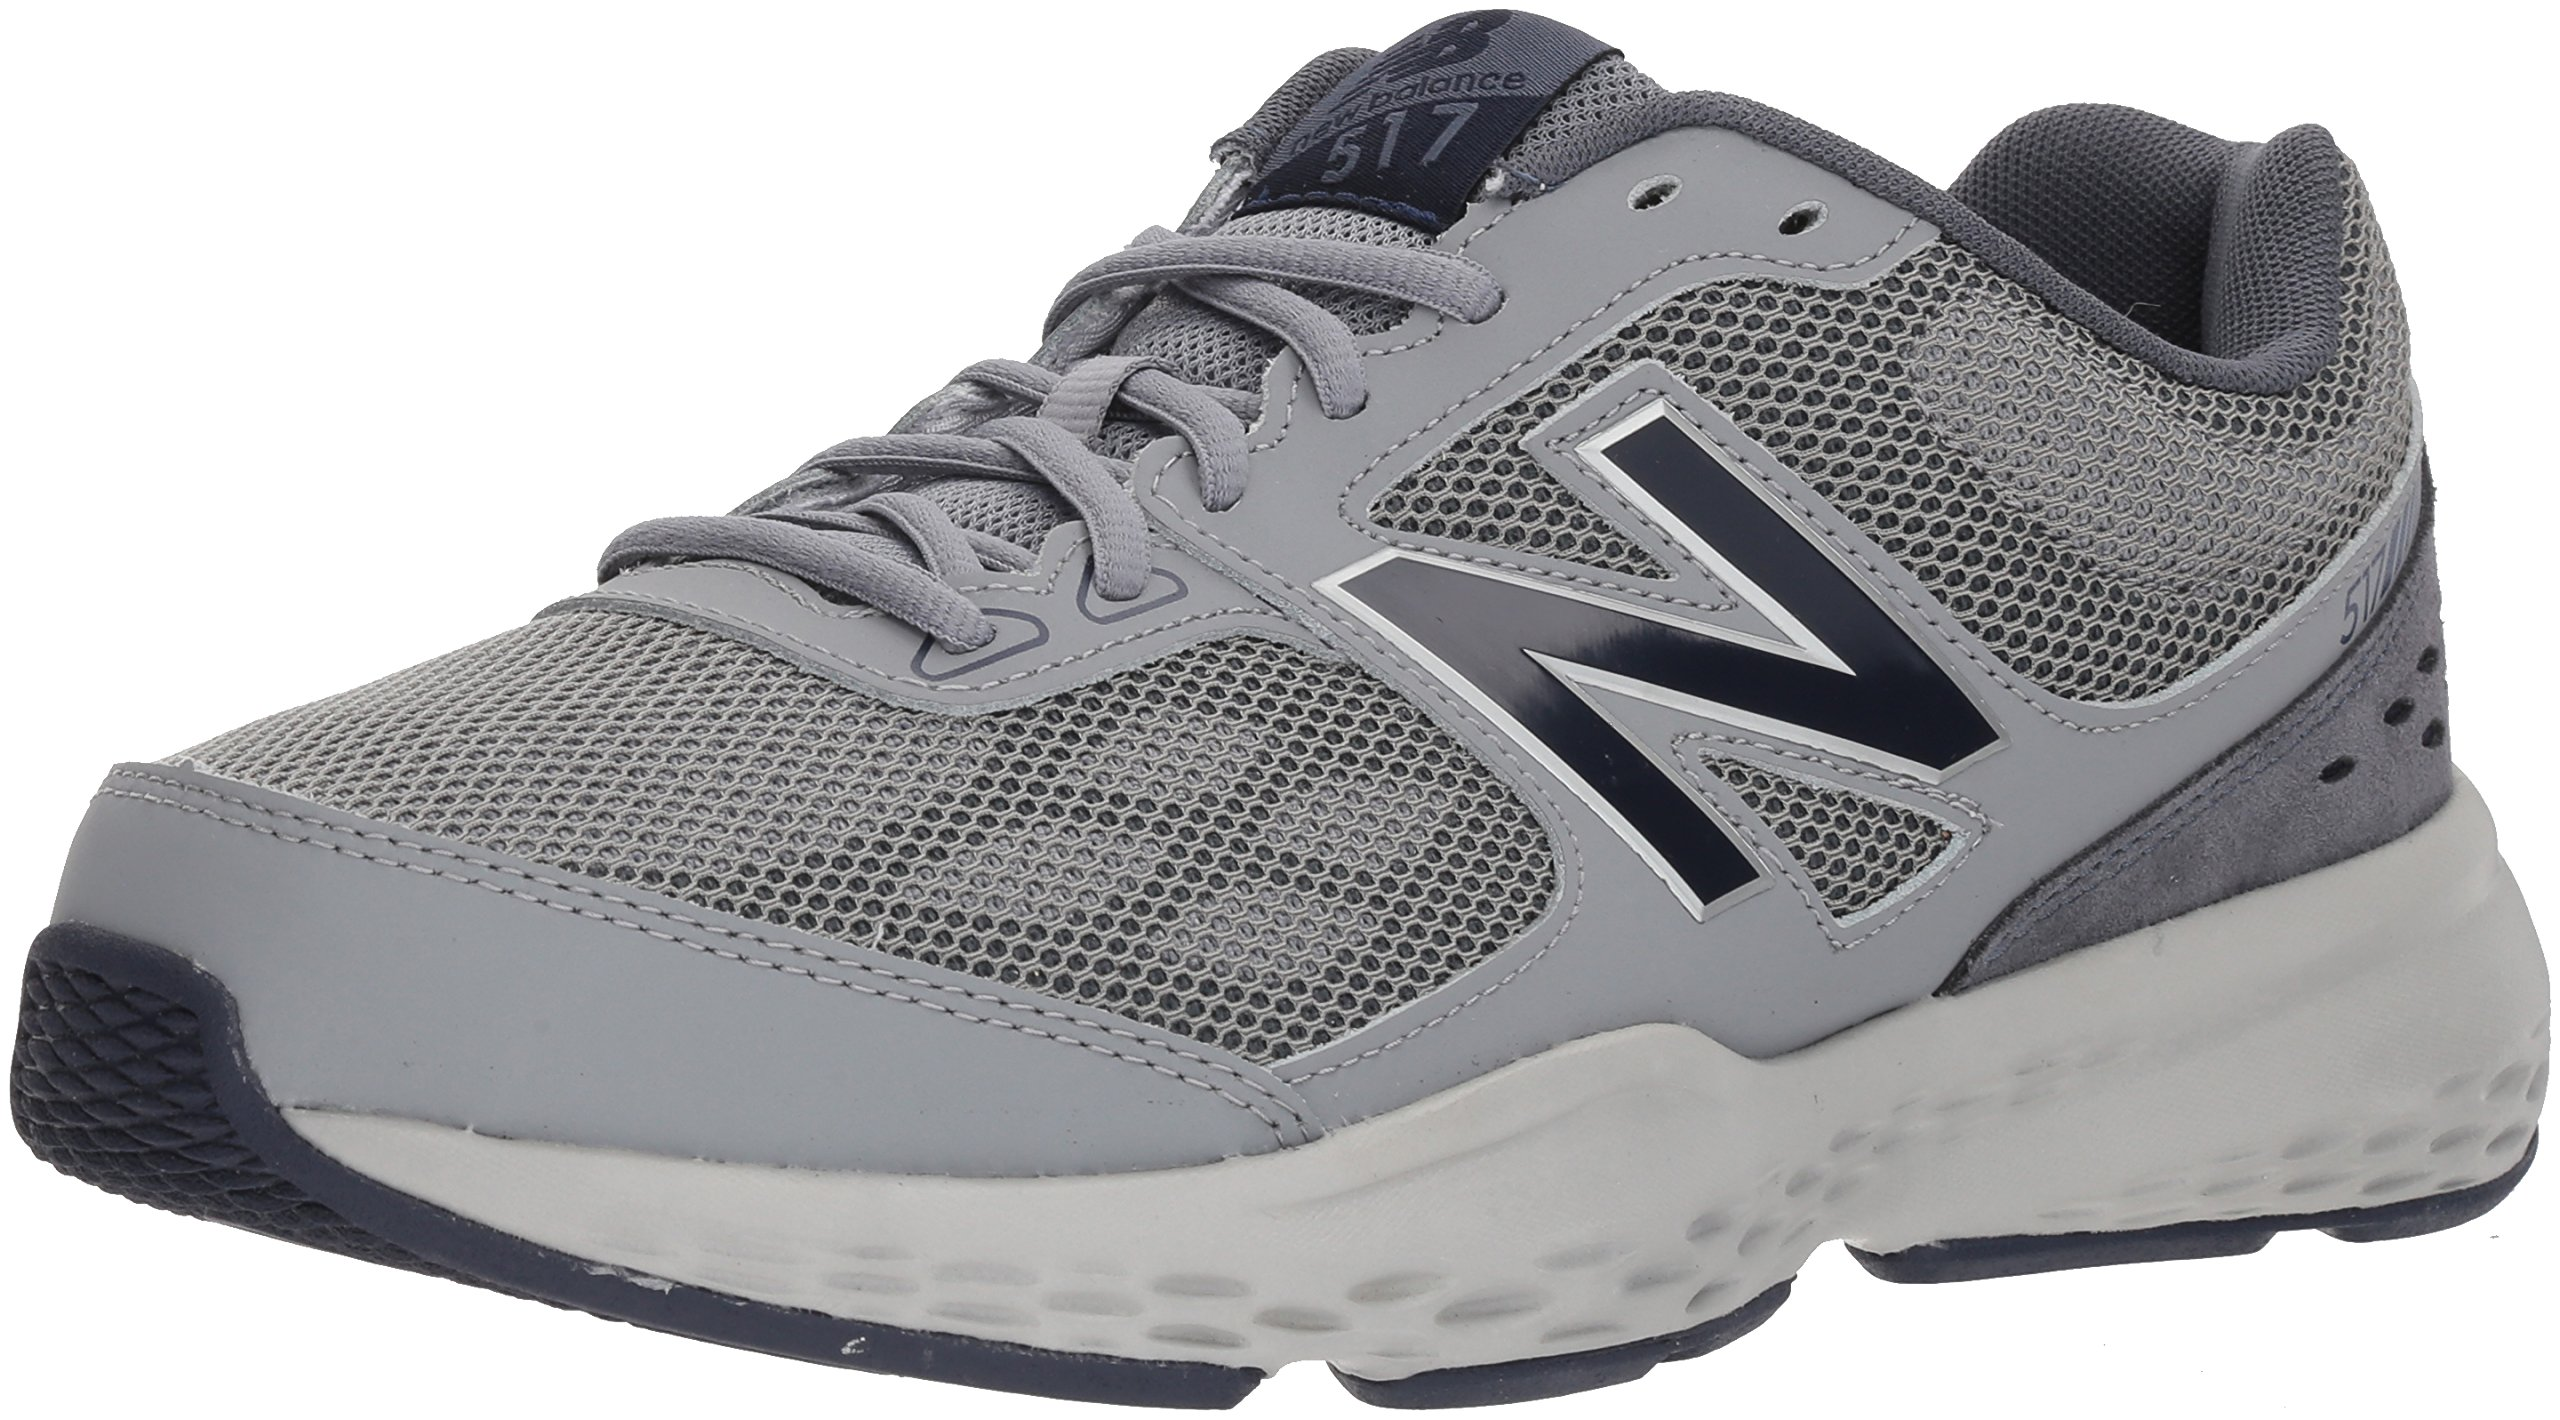 New Balance Men's MX517v1 Training Shoe, Grey/Navy, 11 4E US by New Balance